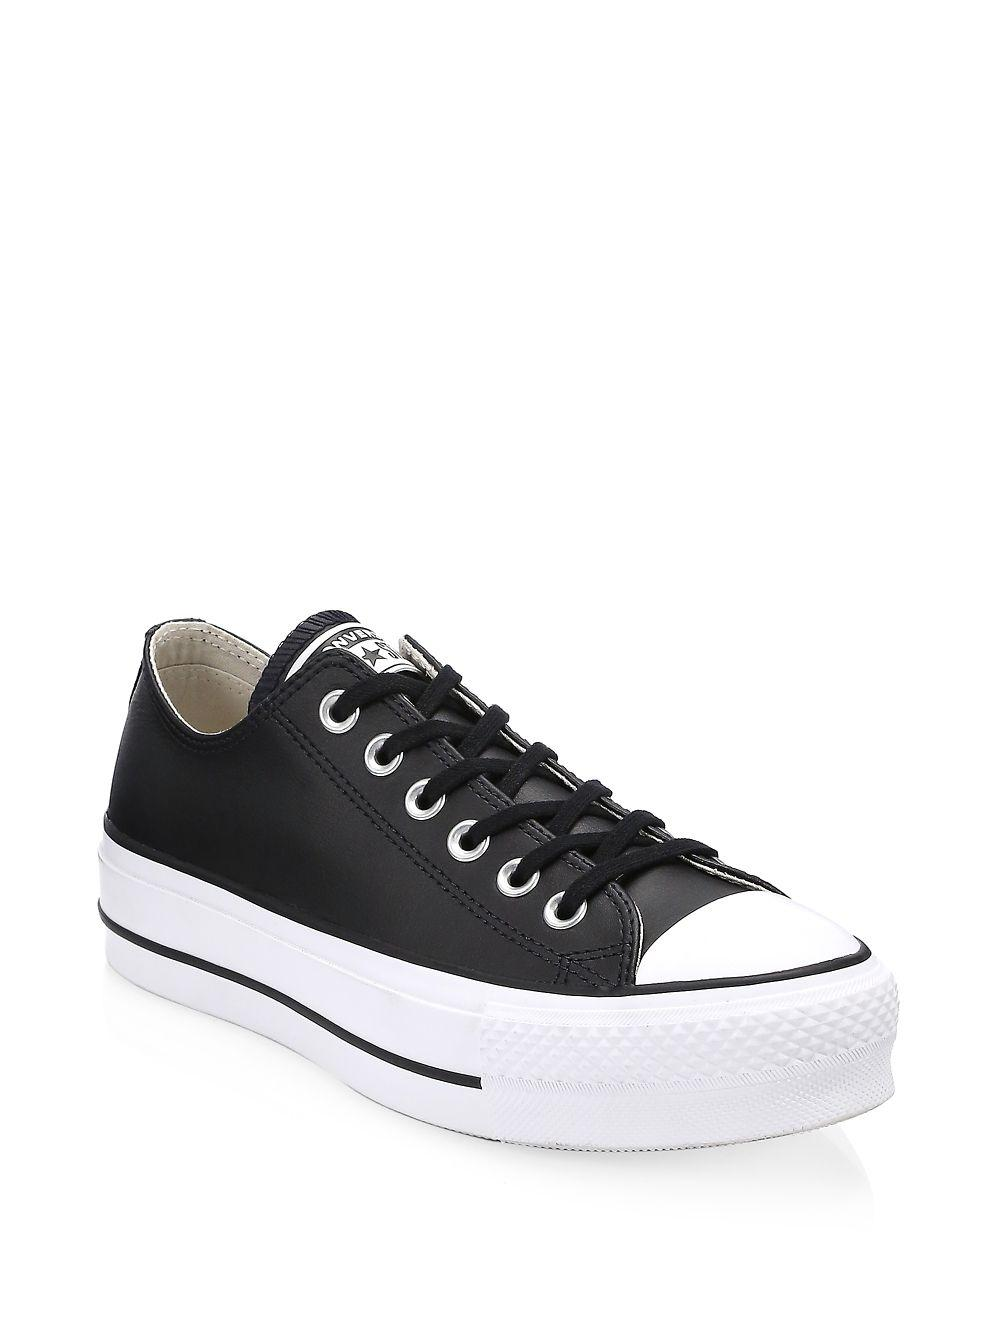 91410e388192 Lyst - Converse Lift Leather Platform Sneakers in Black for Men